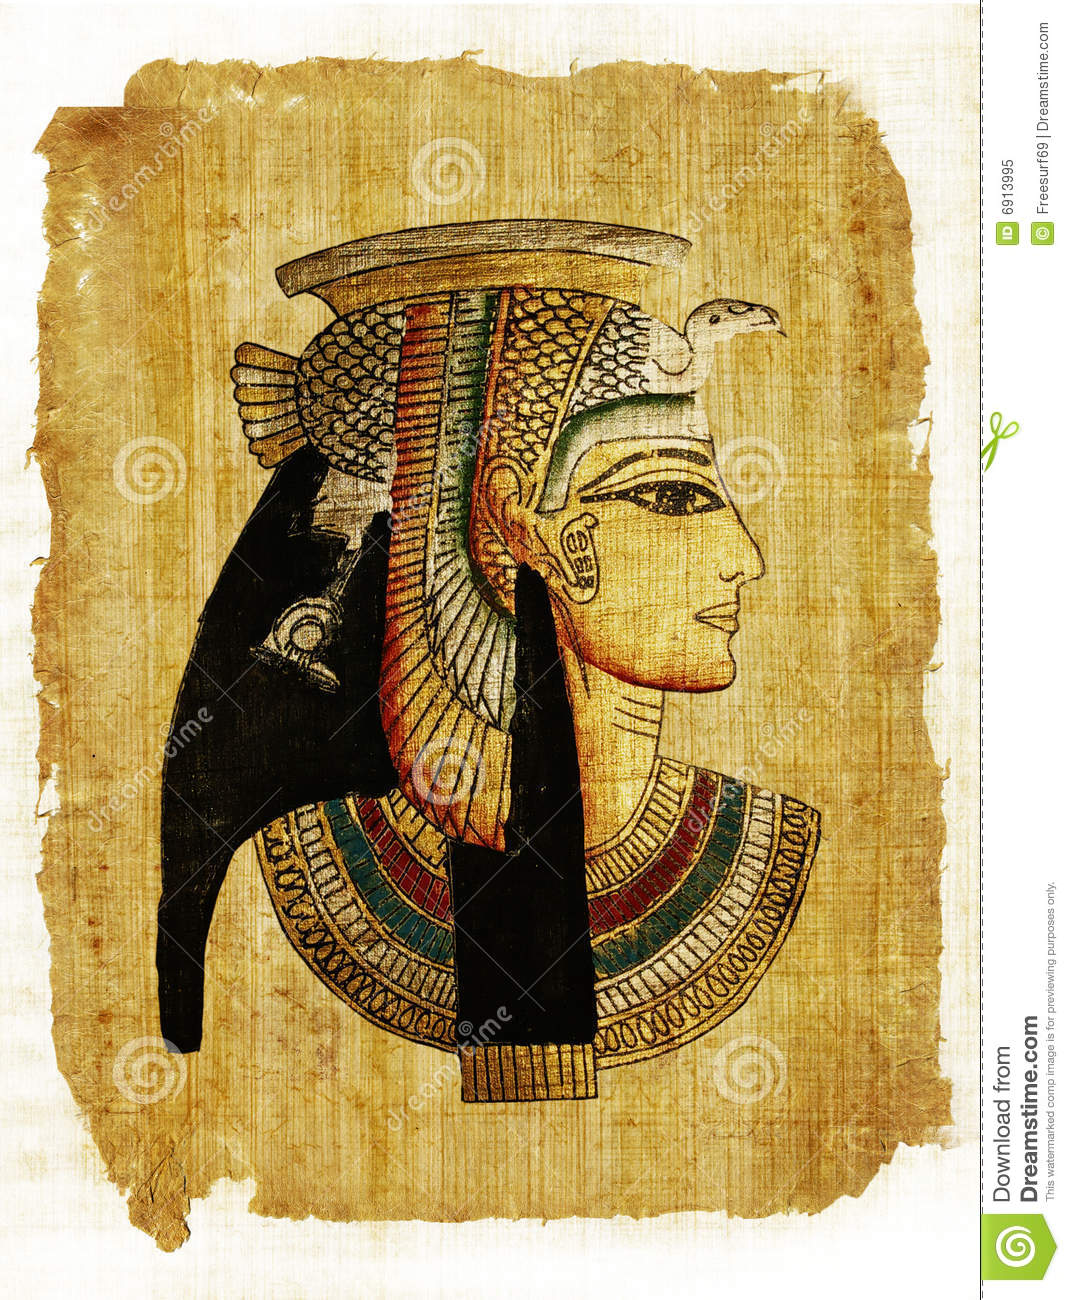 Egyptian Parchment Royalty Free Stock Photo - Image: 6913995